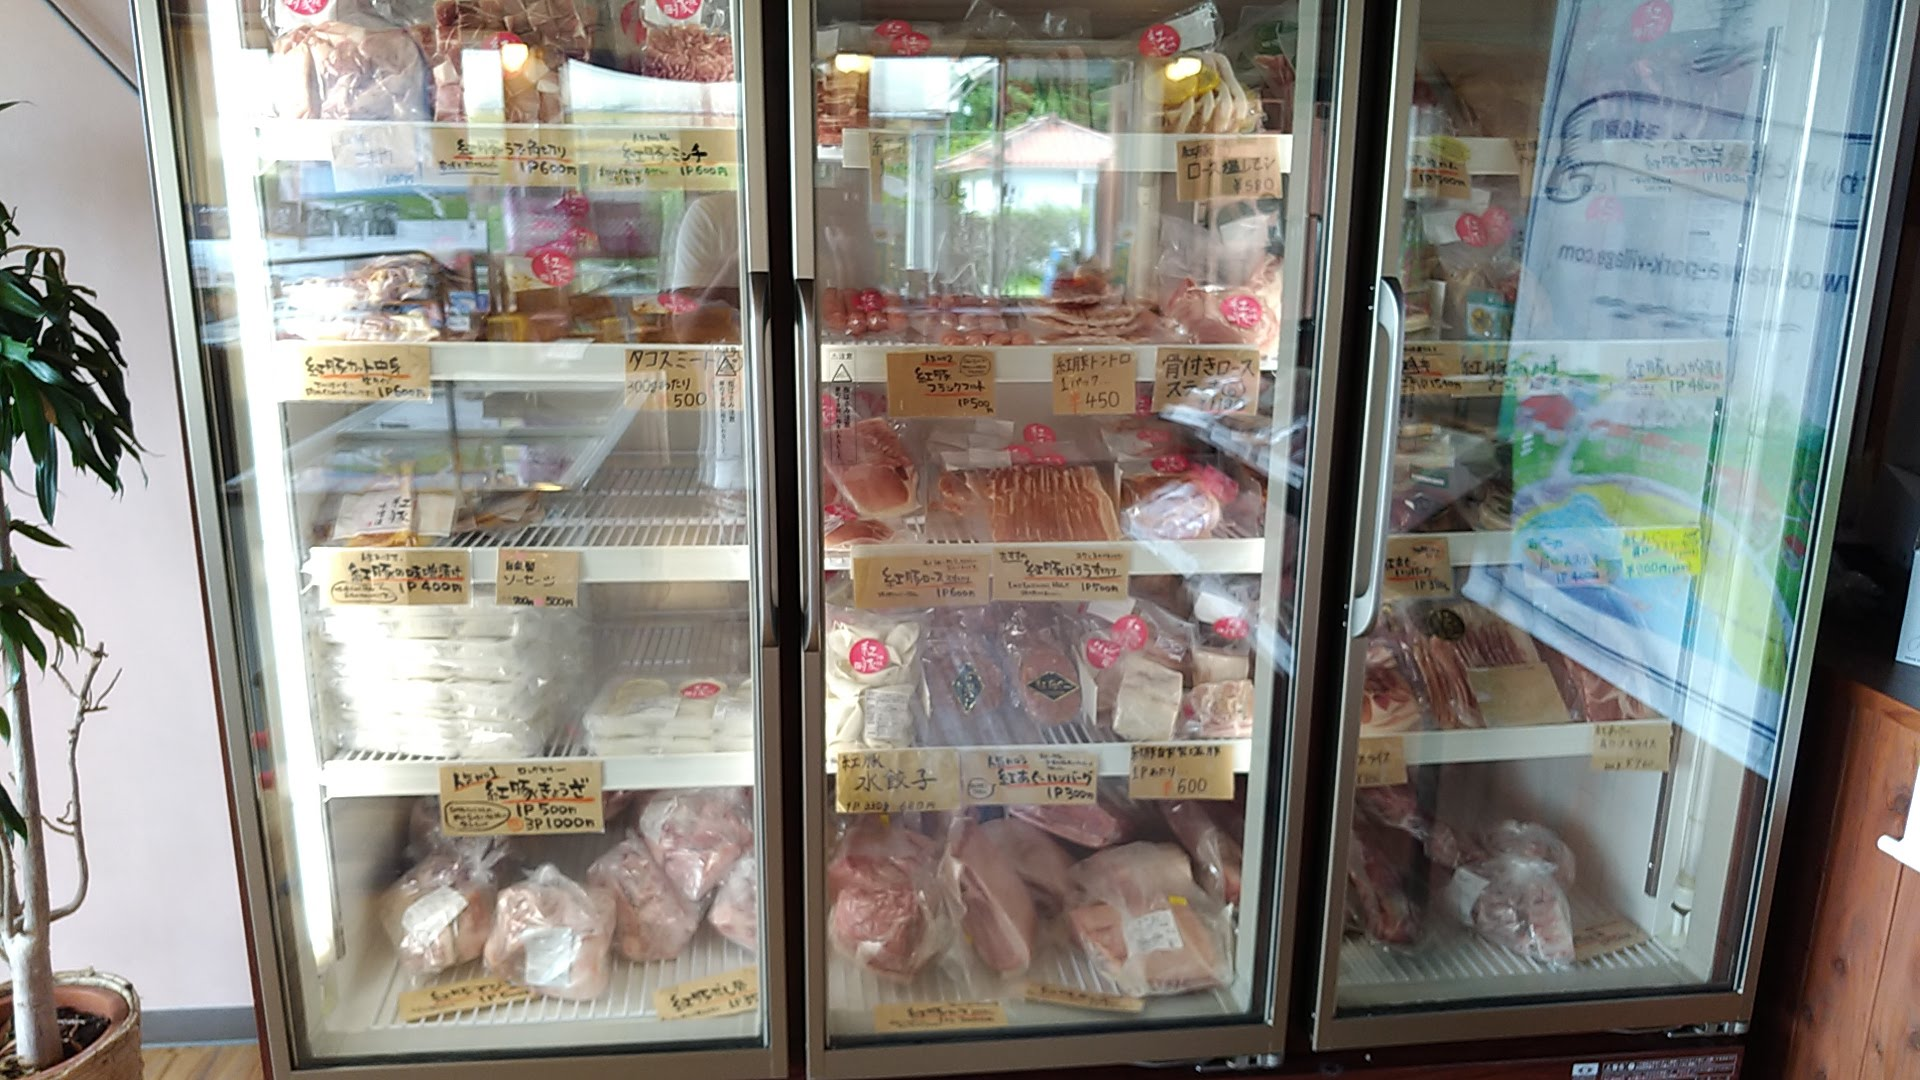 Ham, sausage, dumplings, etc. using red pig and red aguu are sold at the store entrance 1